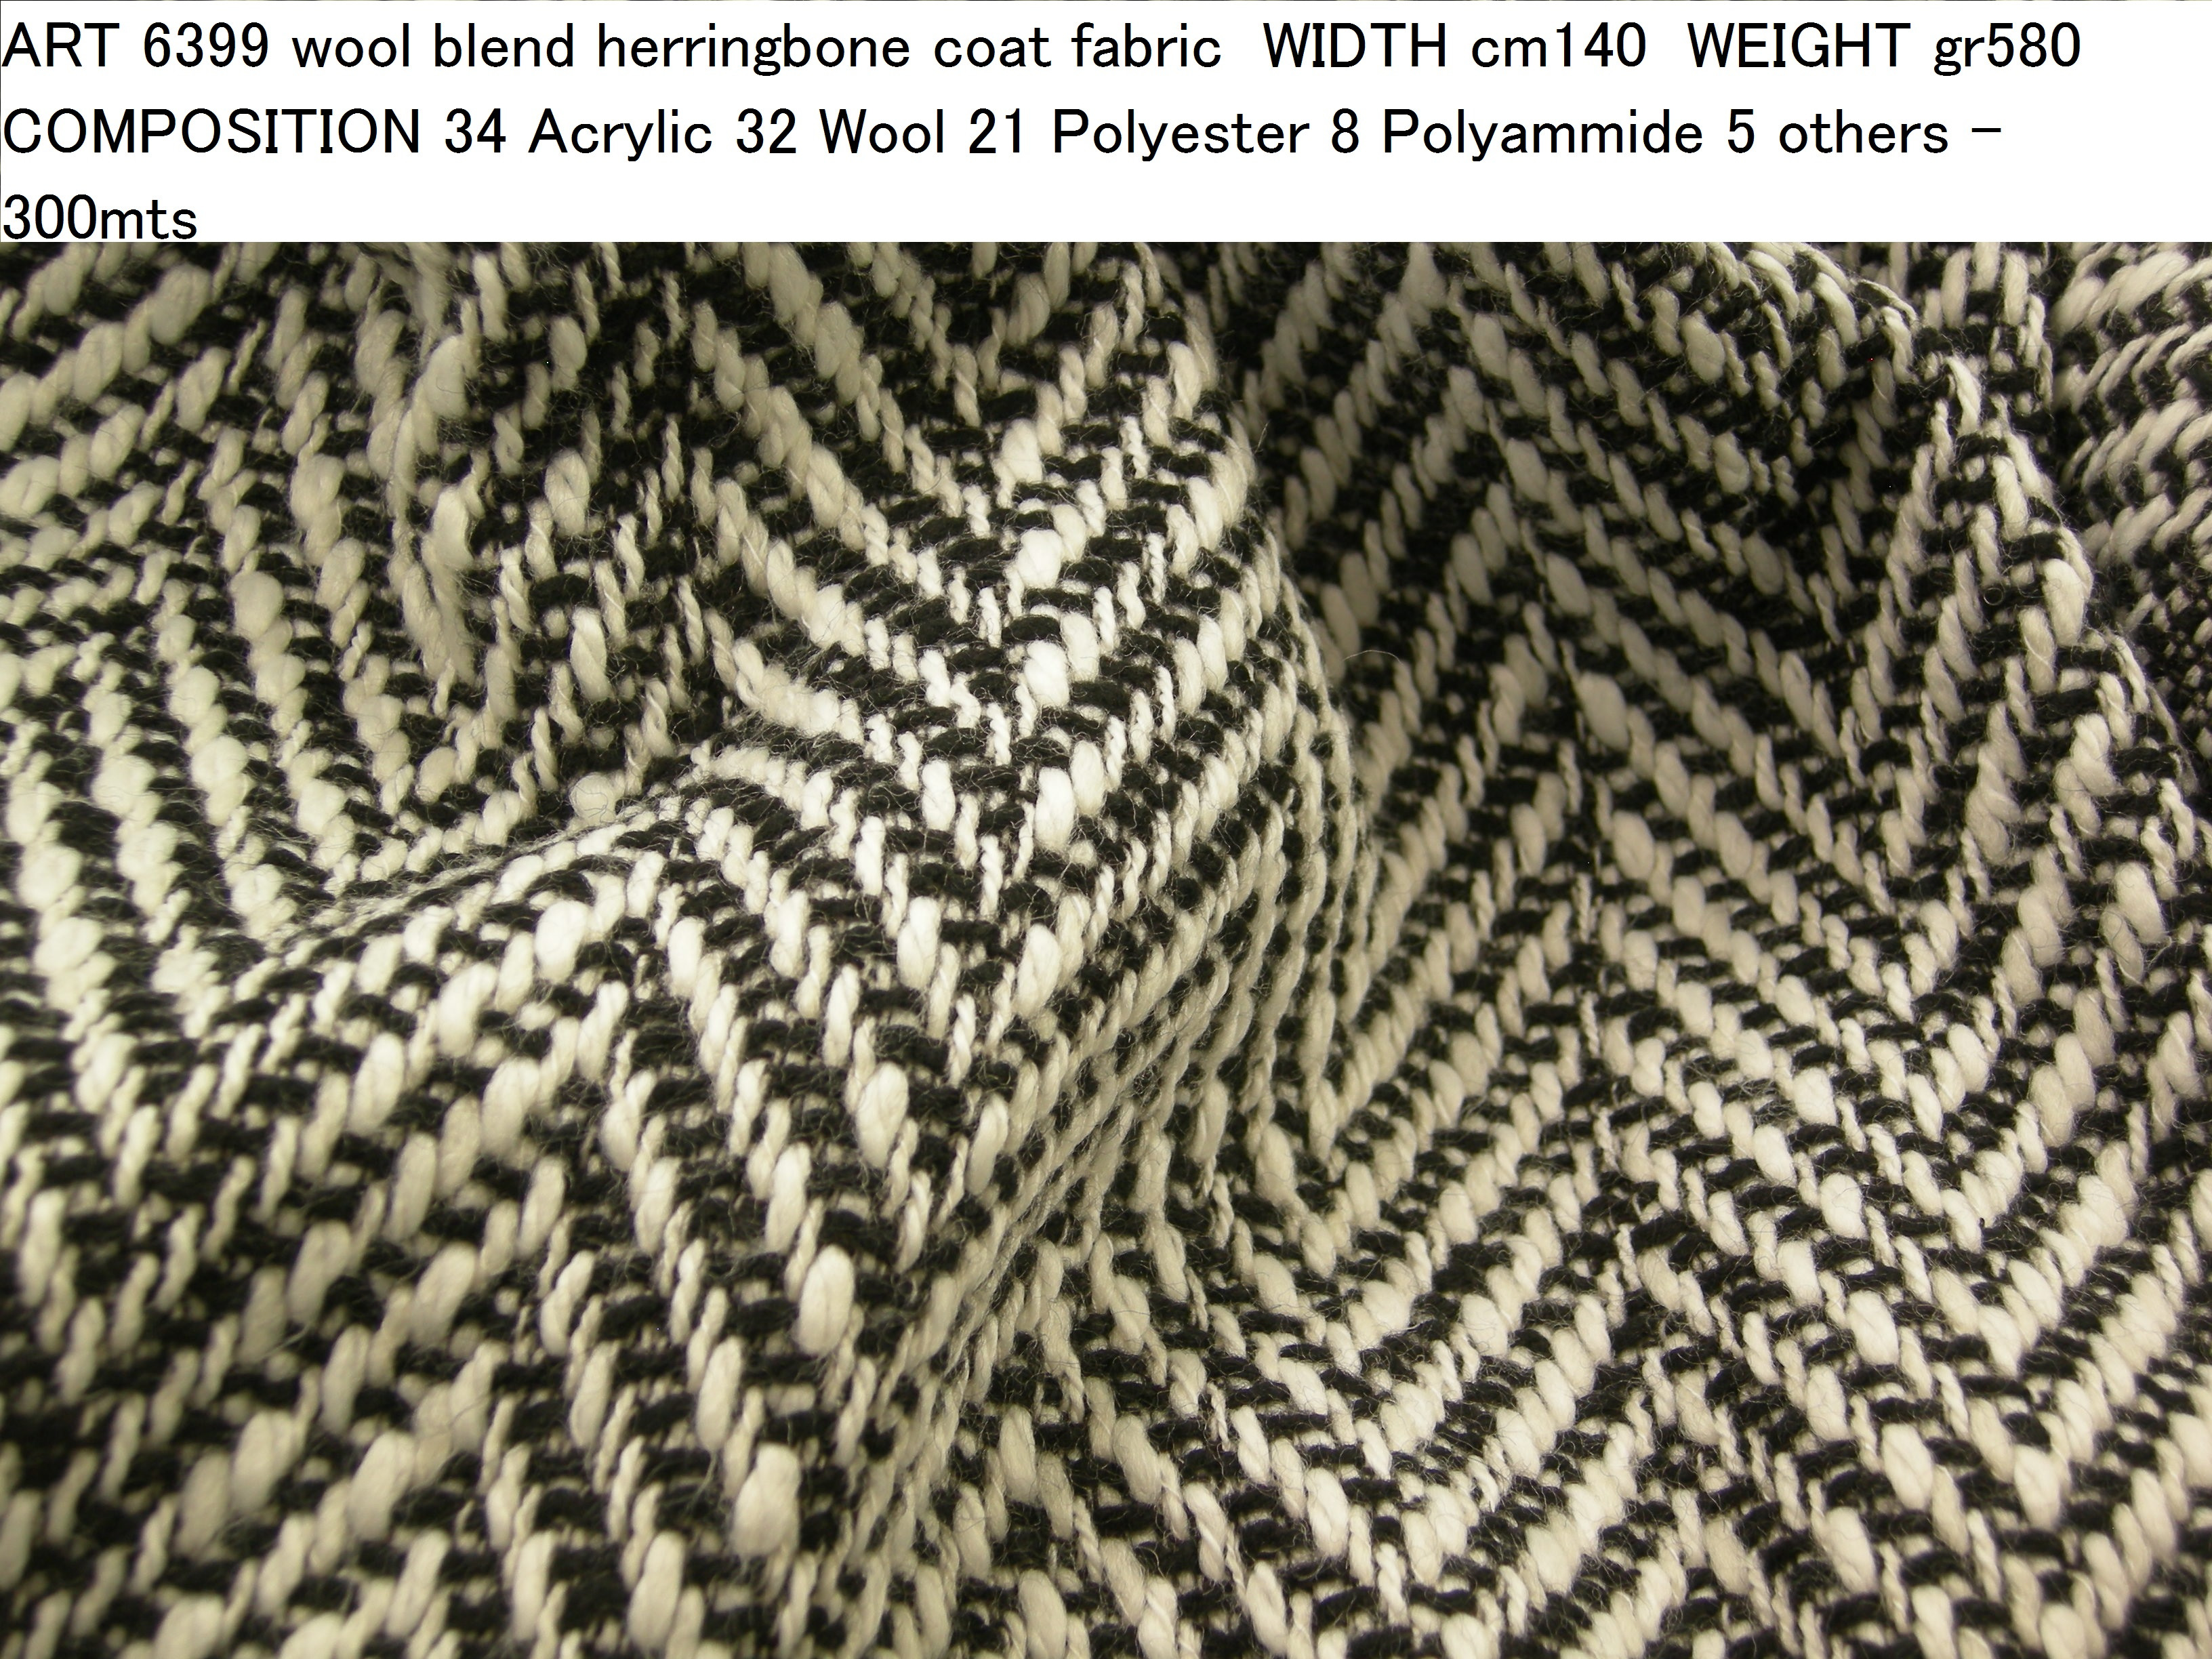 ART 6399 wool blend herringbone coat fabric WIDTH cm140 WEIGHT gr580 COMPOSITION 34 Acrylic 32 Wool 21 Polyester 8 Polyammide 5 others - 300mts